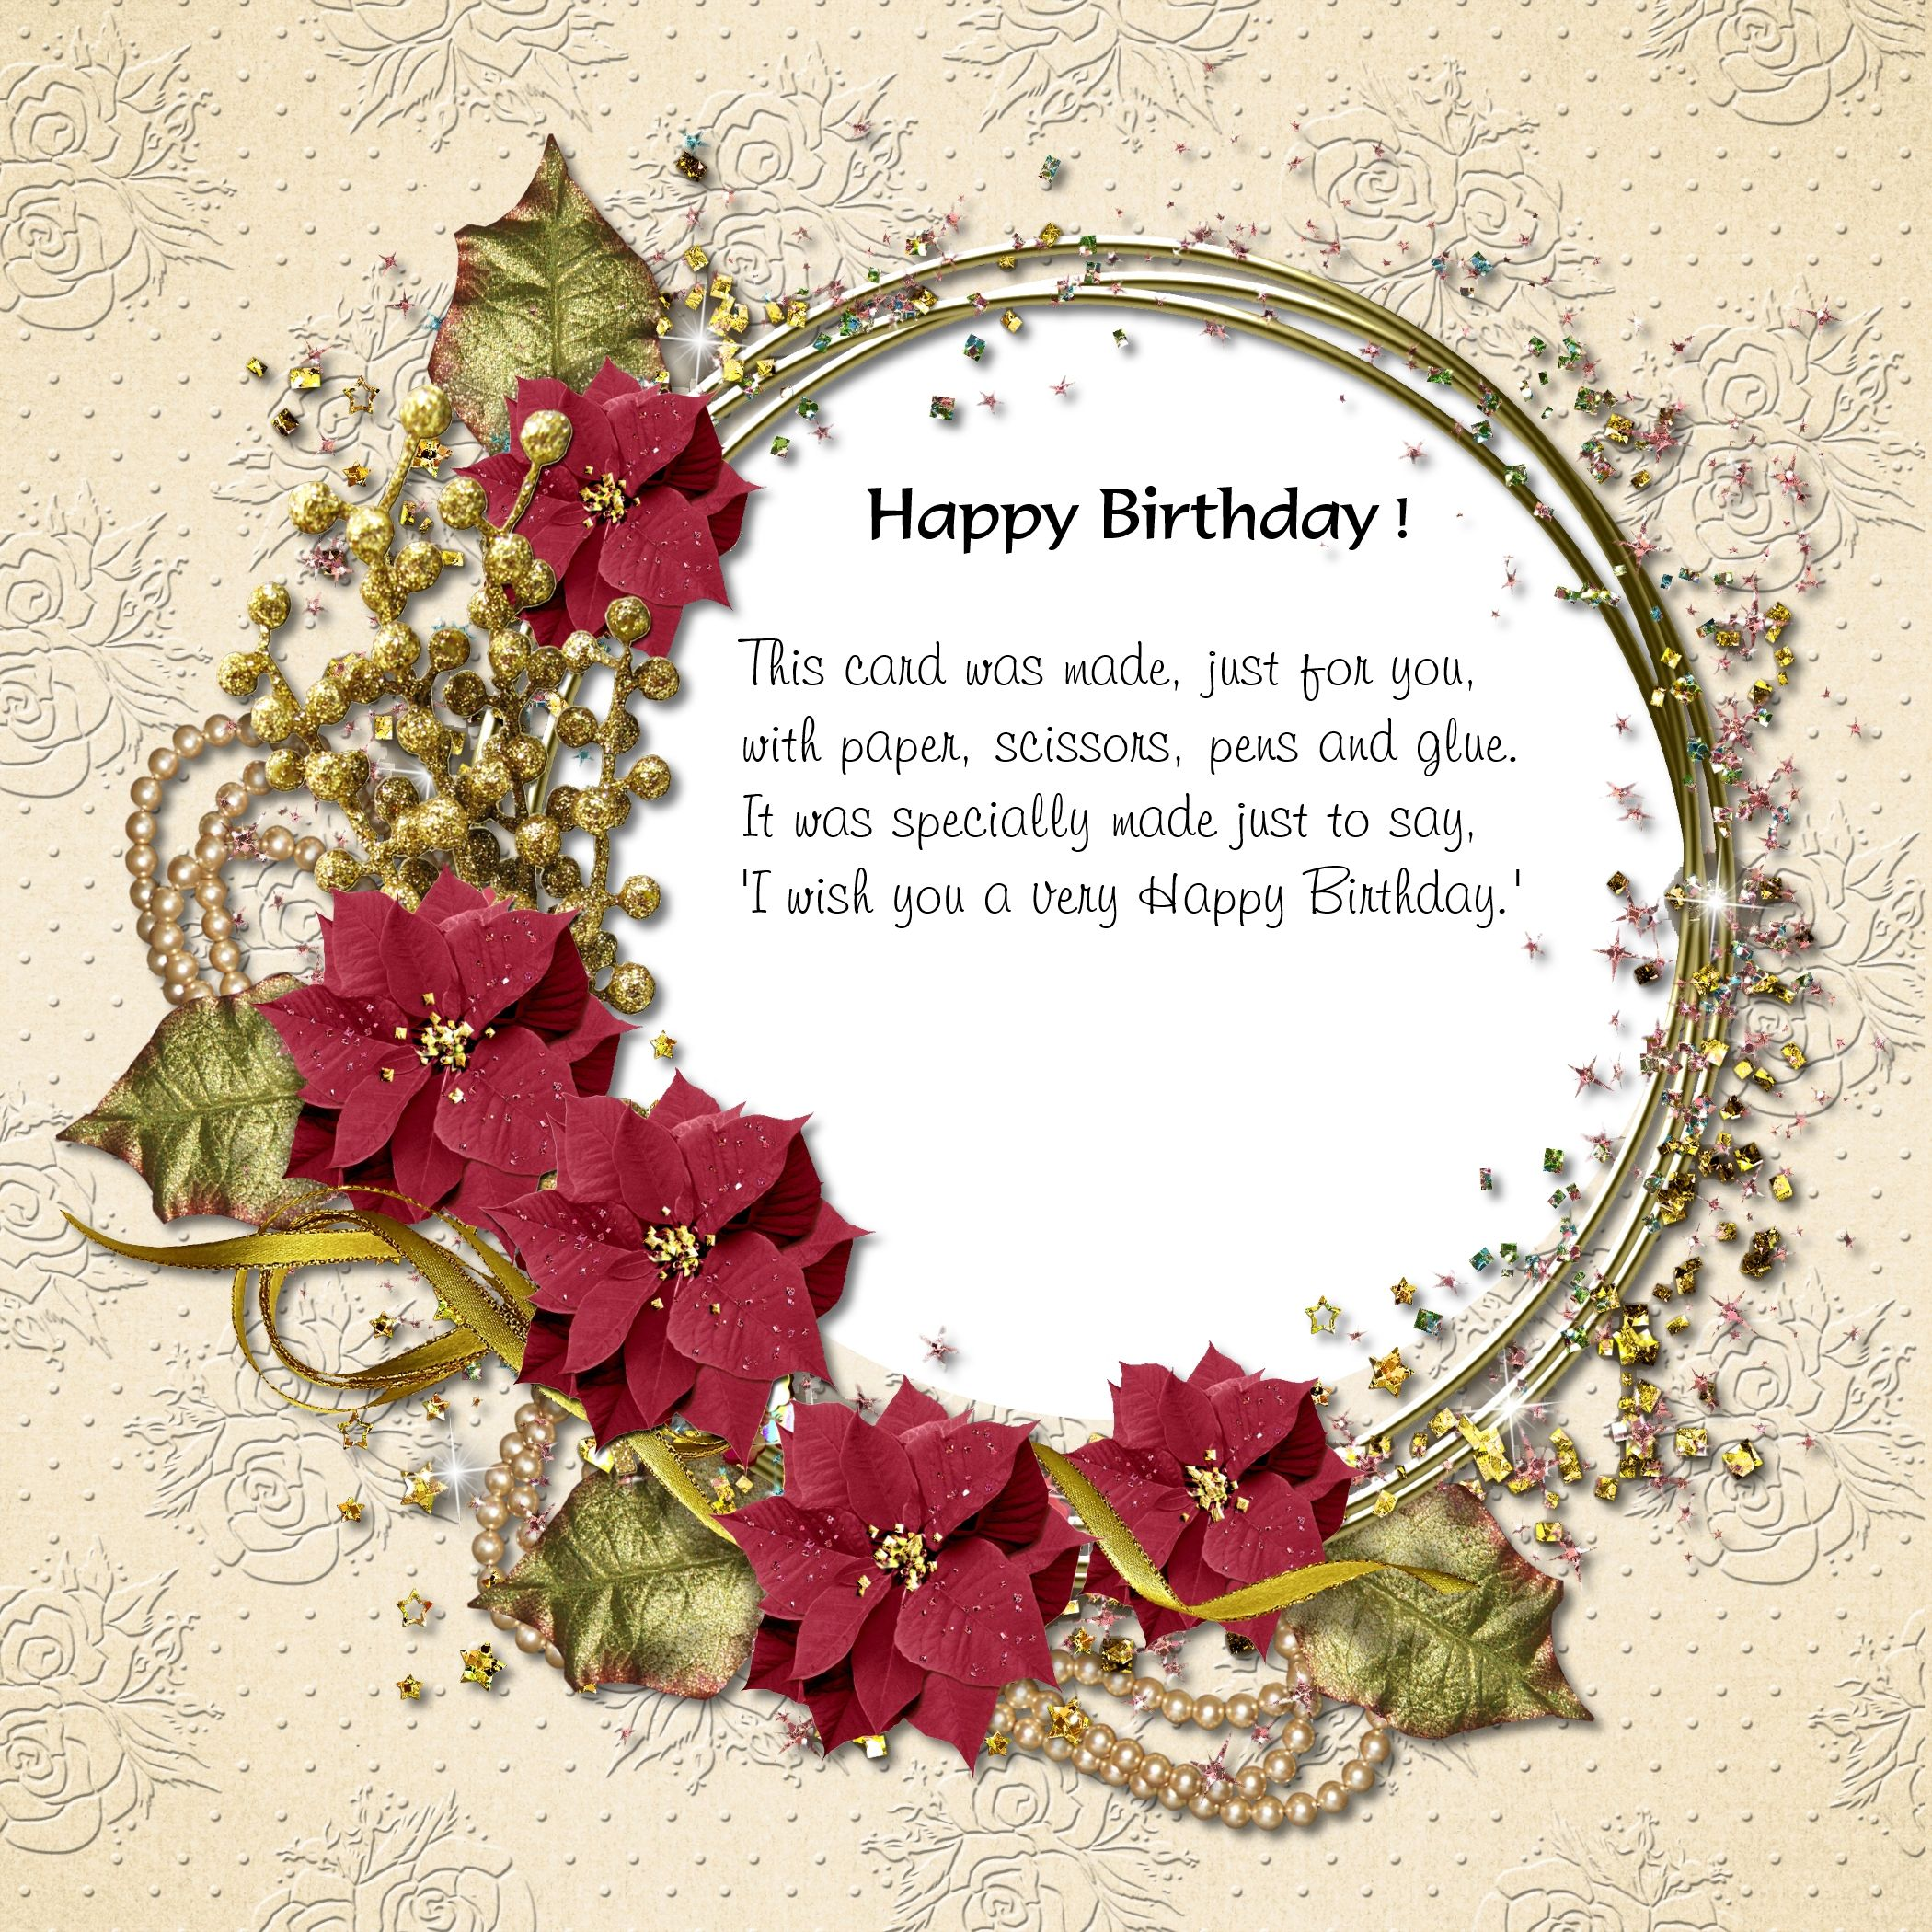 Birthday Card insert created with DigiBoss Background and flower frame.